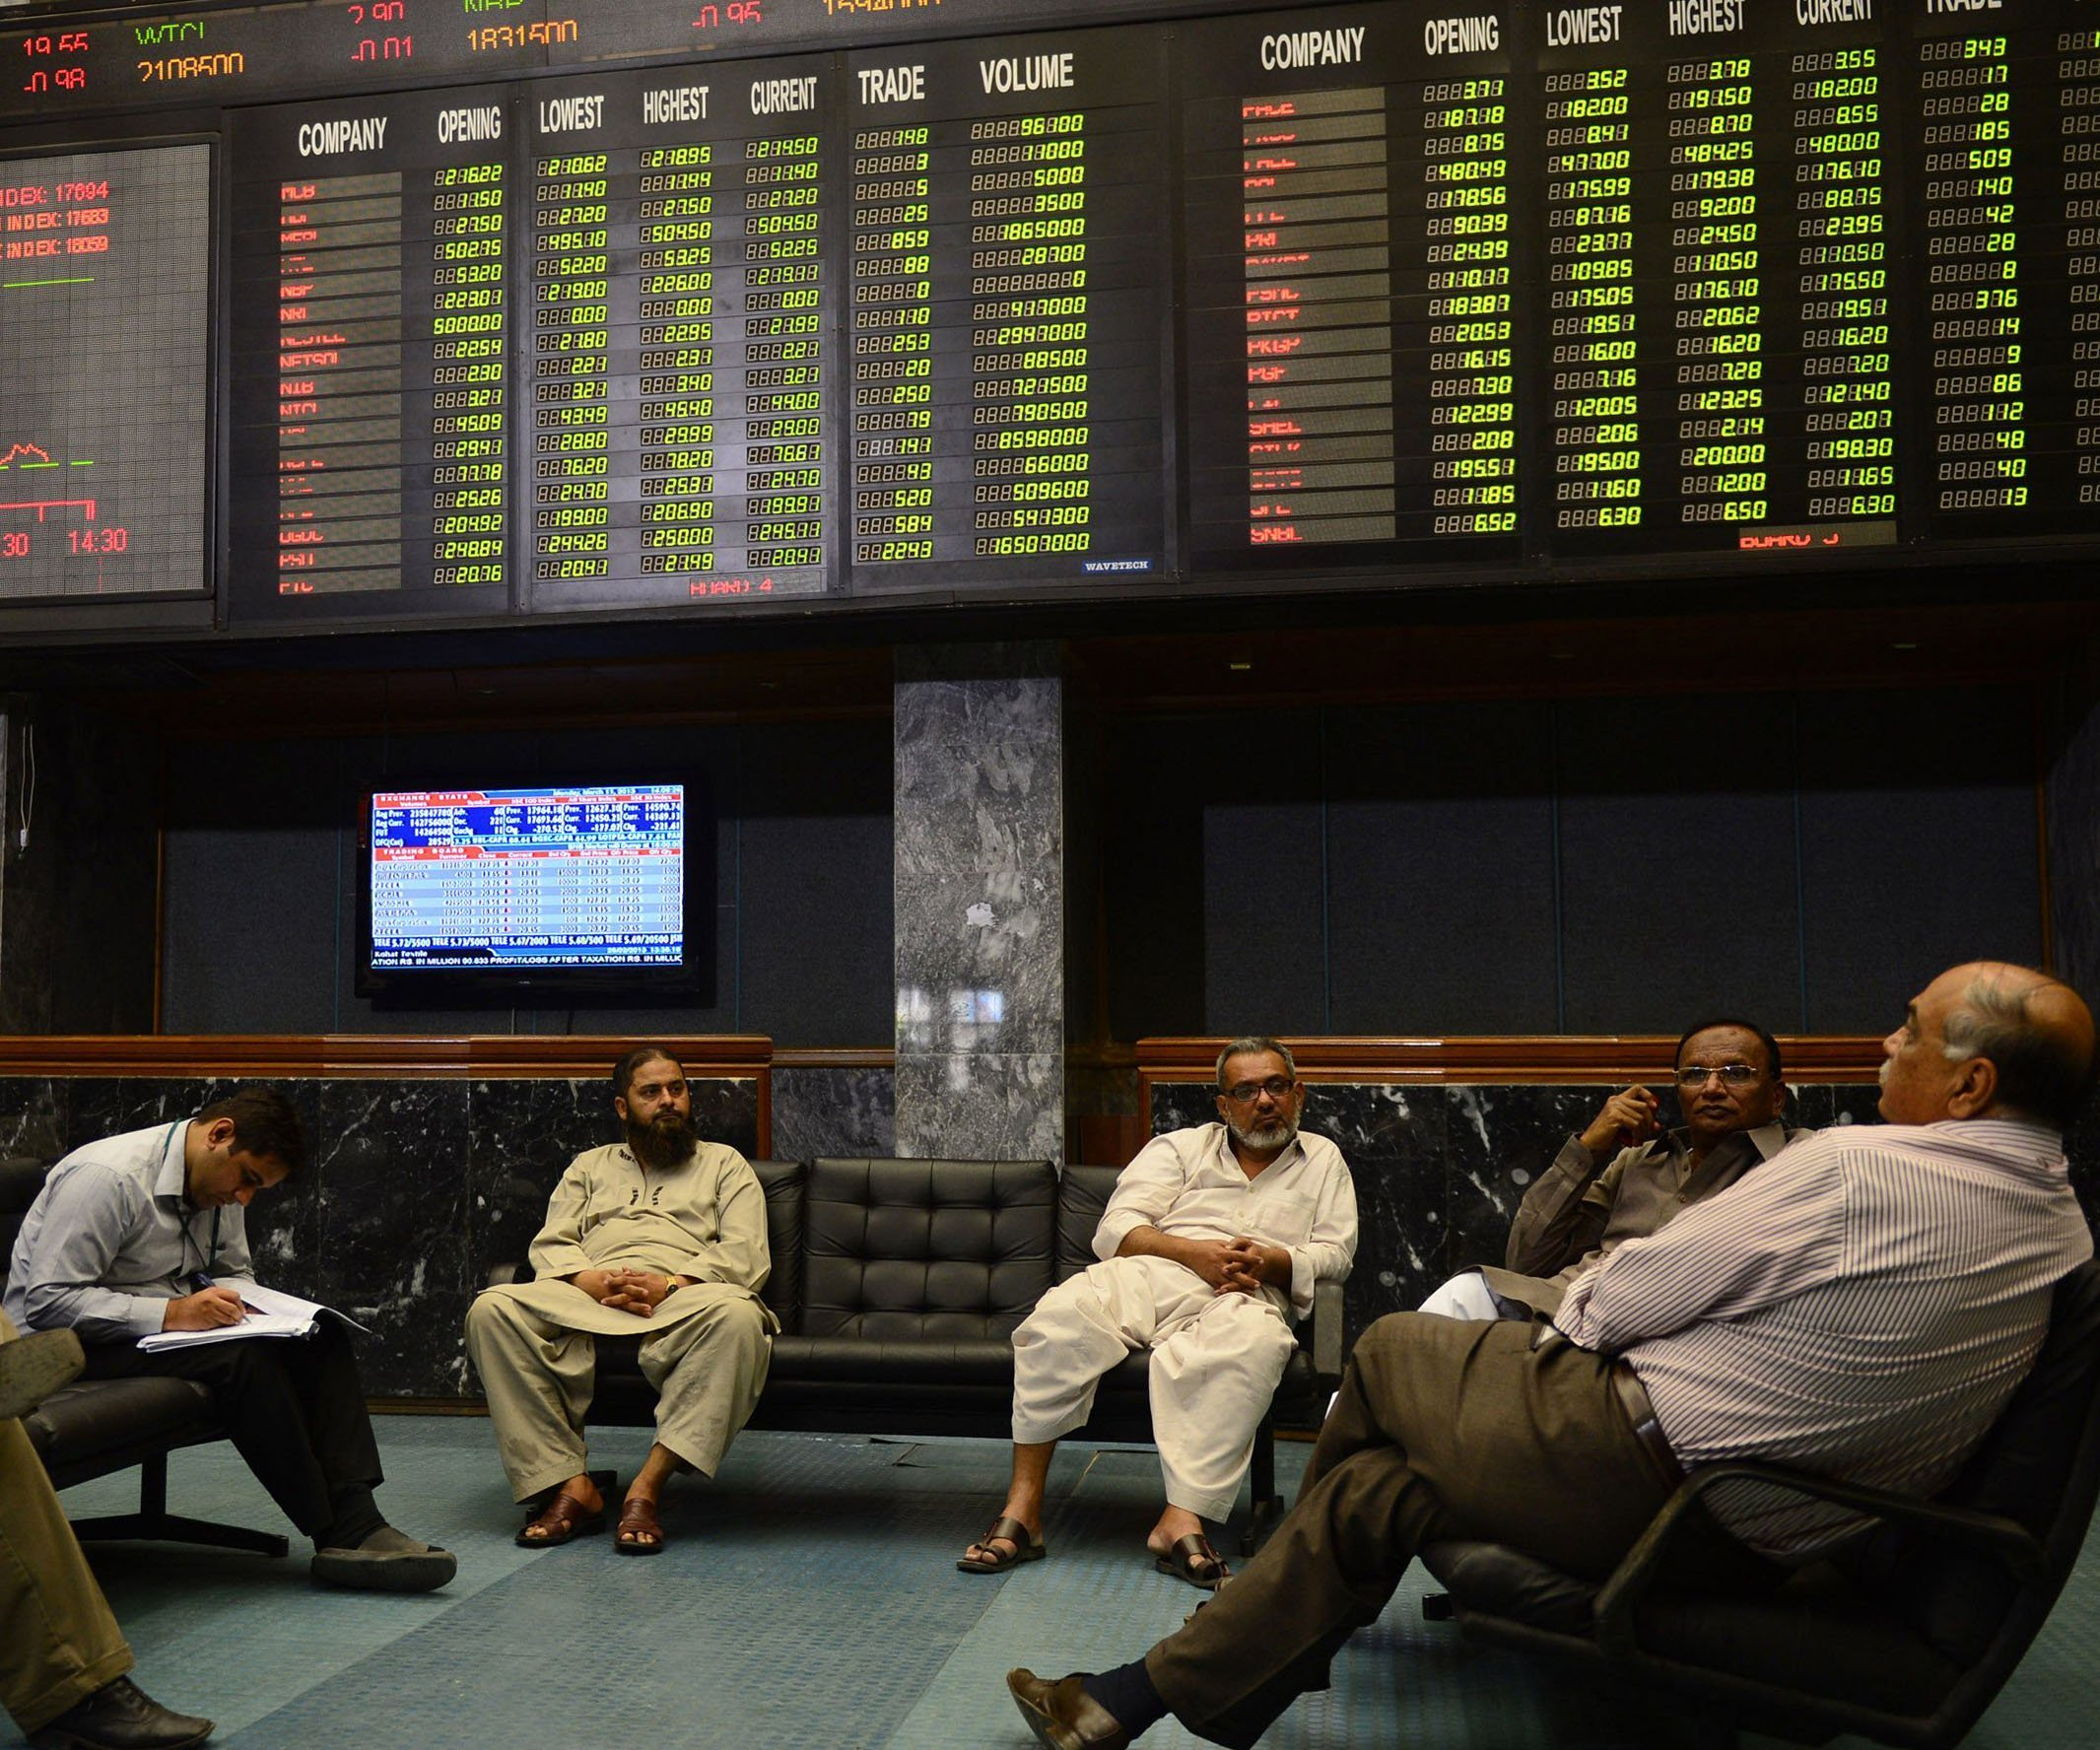 Benchmark index increases 105.19 points to settle at 35,758.52. PHOTO: AFP